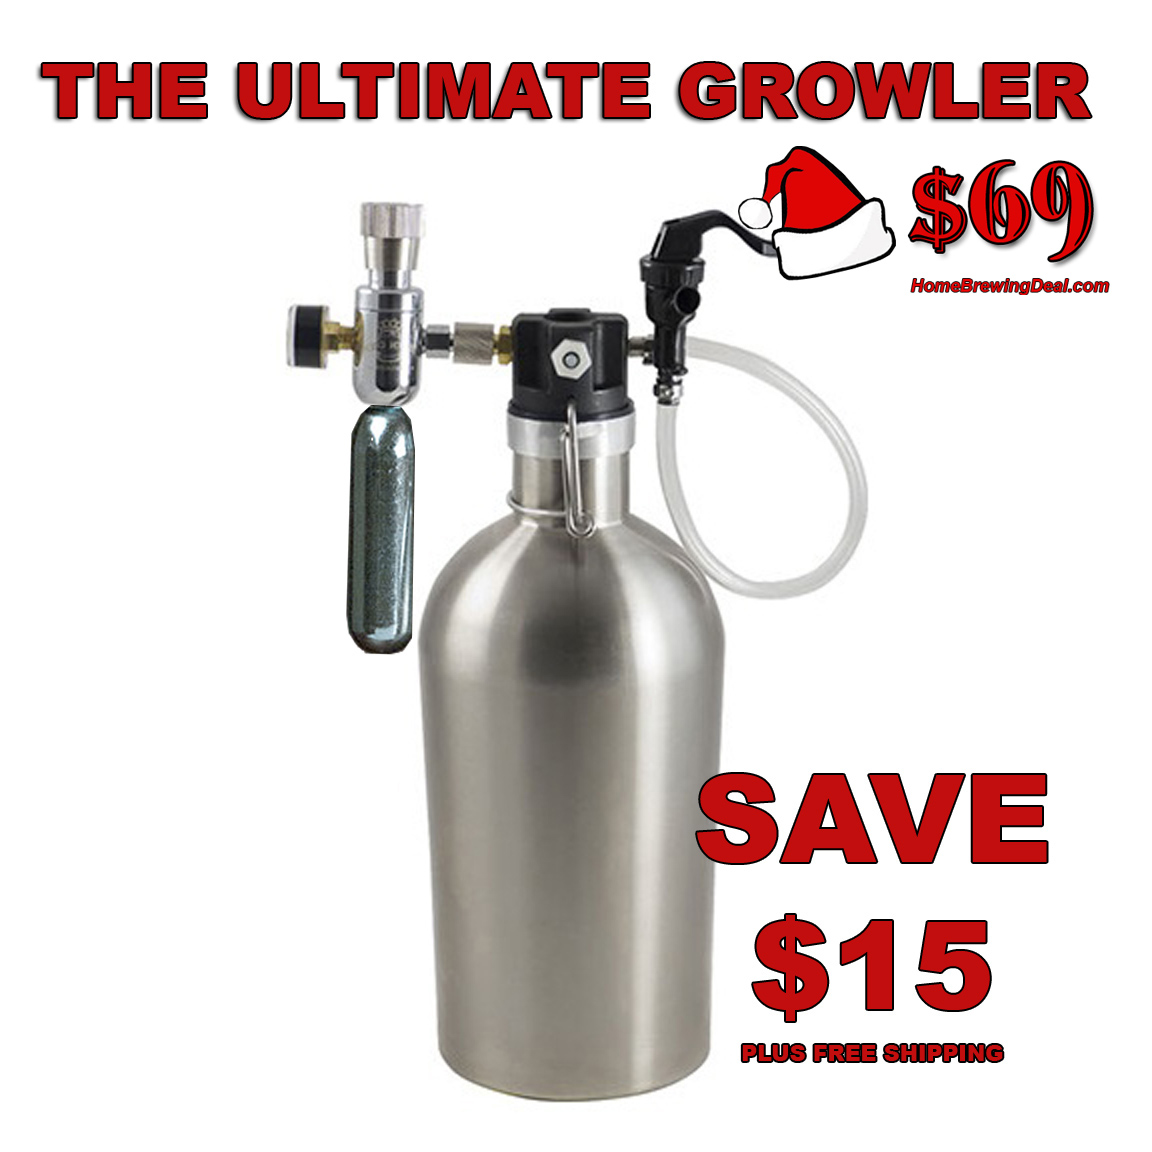 Coupon Code For Save $15 On A New Ultimate Stainless Steel Growler With CO2 Regulator, Just $69 and Ships Free Coupon Code